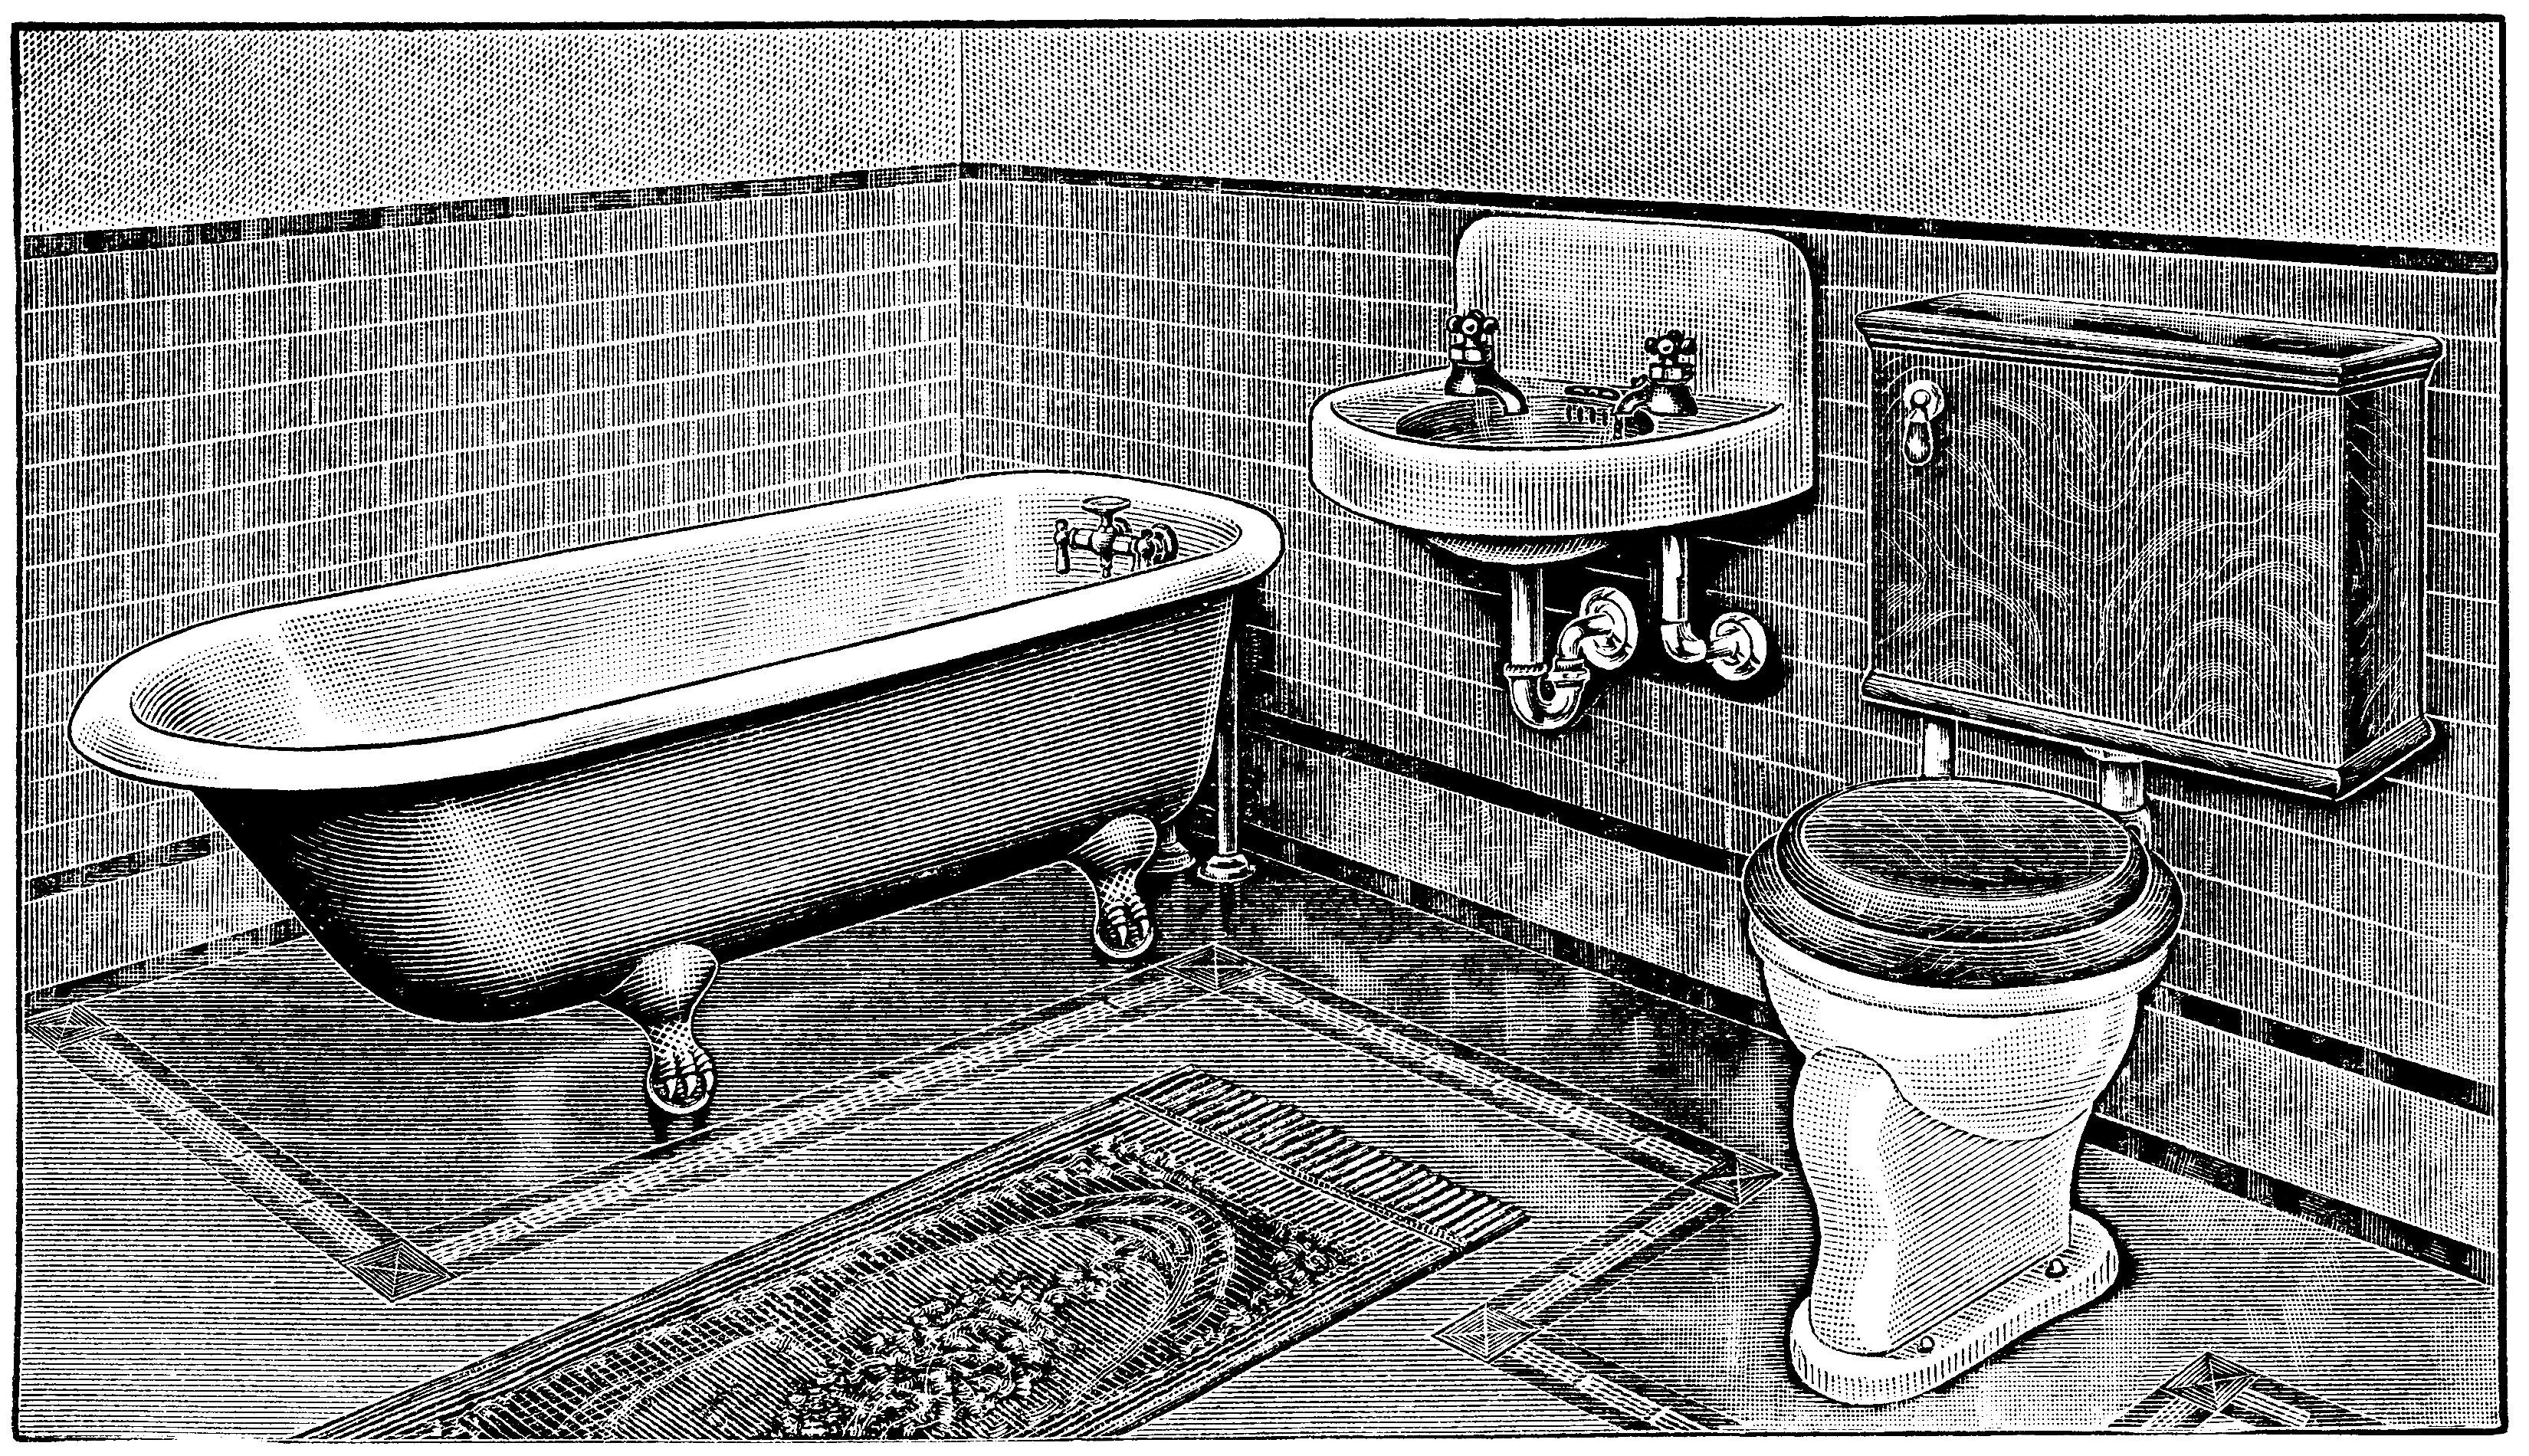 Vintage Bathroom Bathroom Clip Art Claw Foot Tub Illus Antique